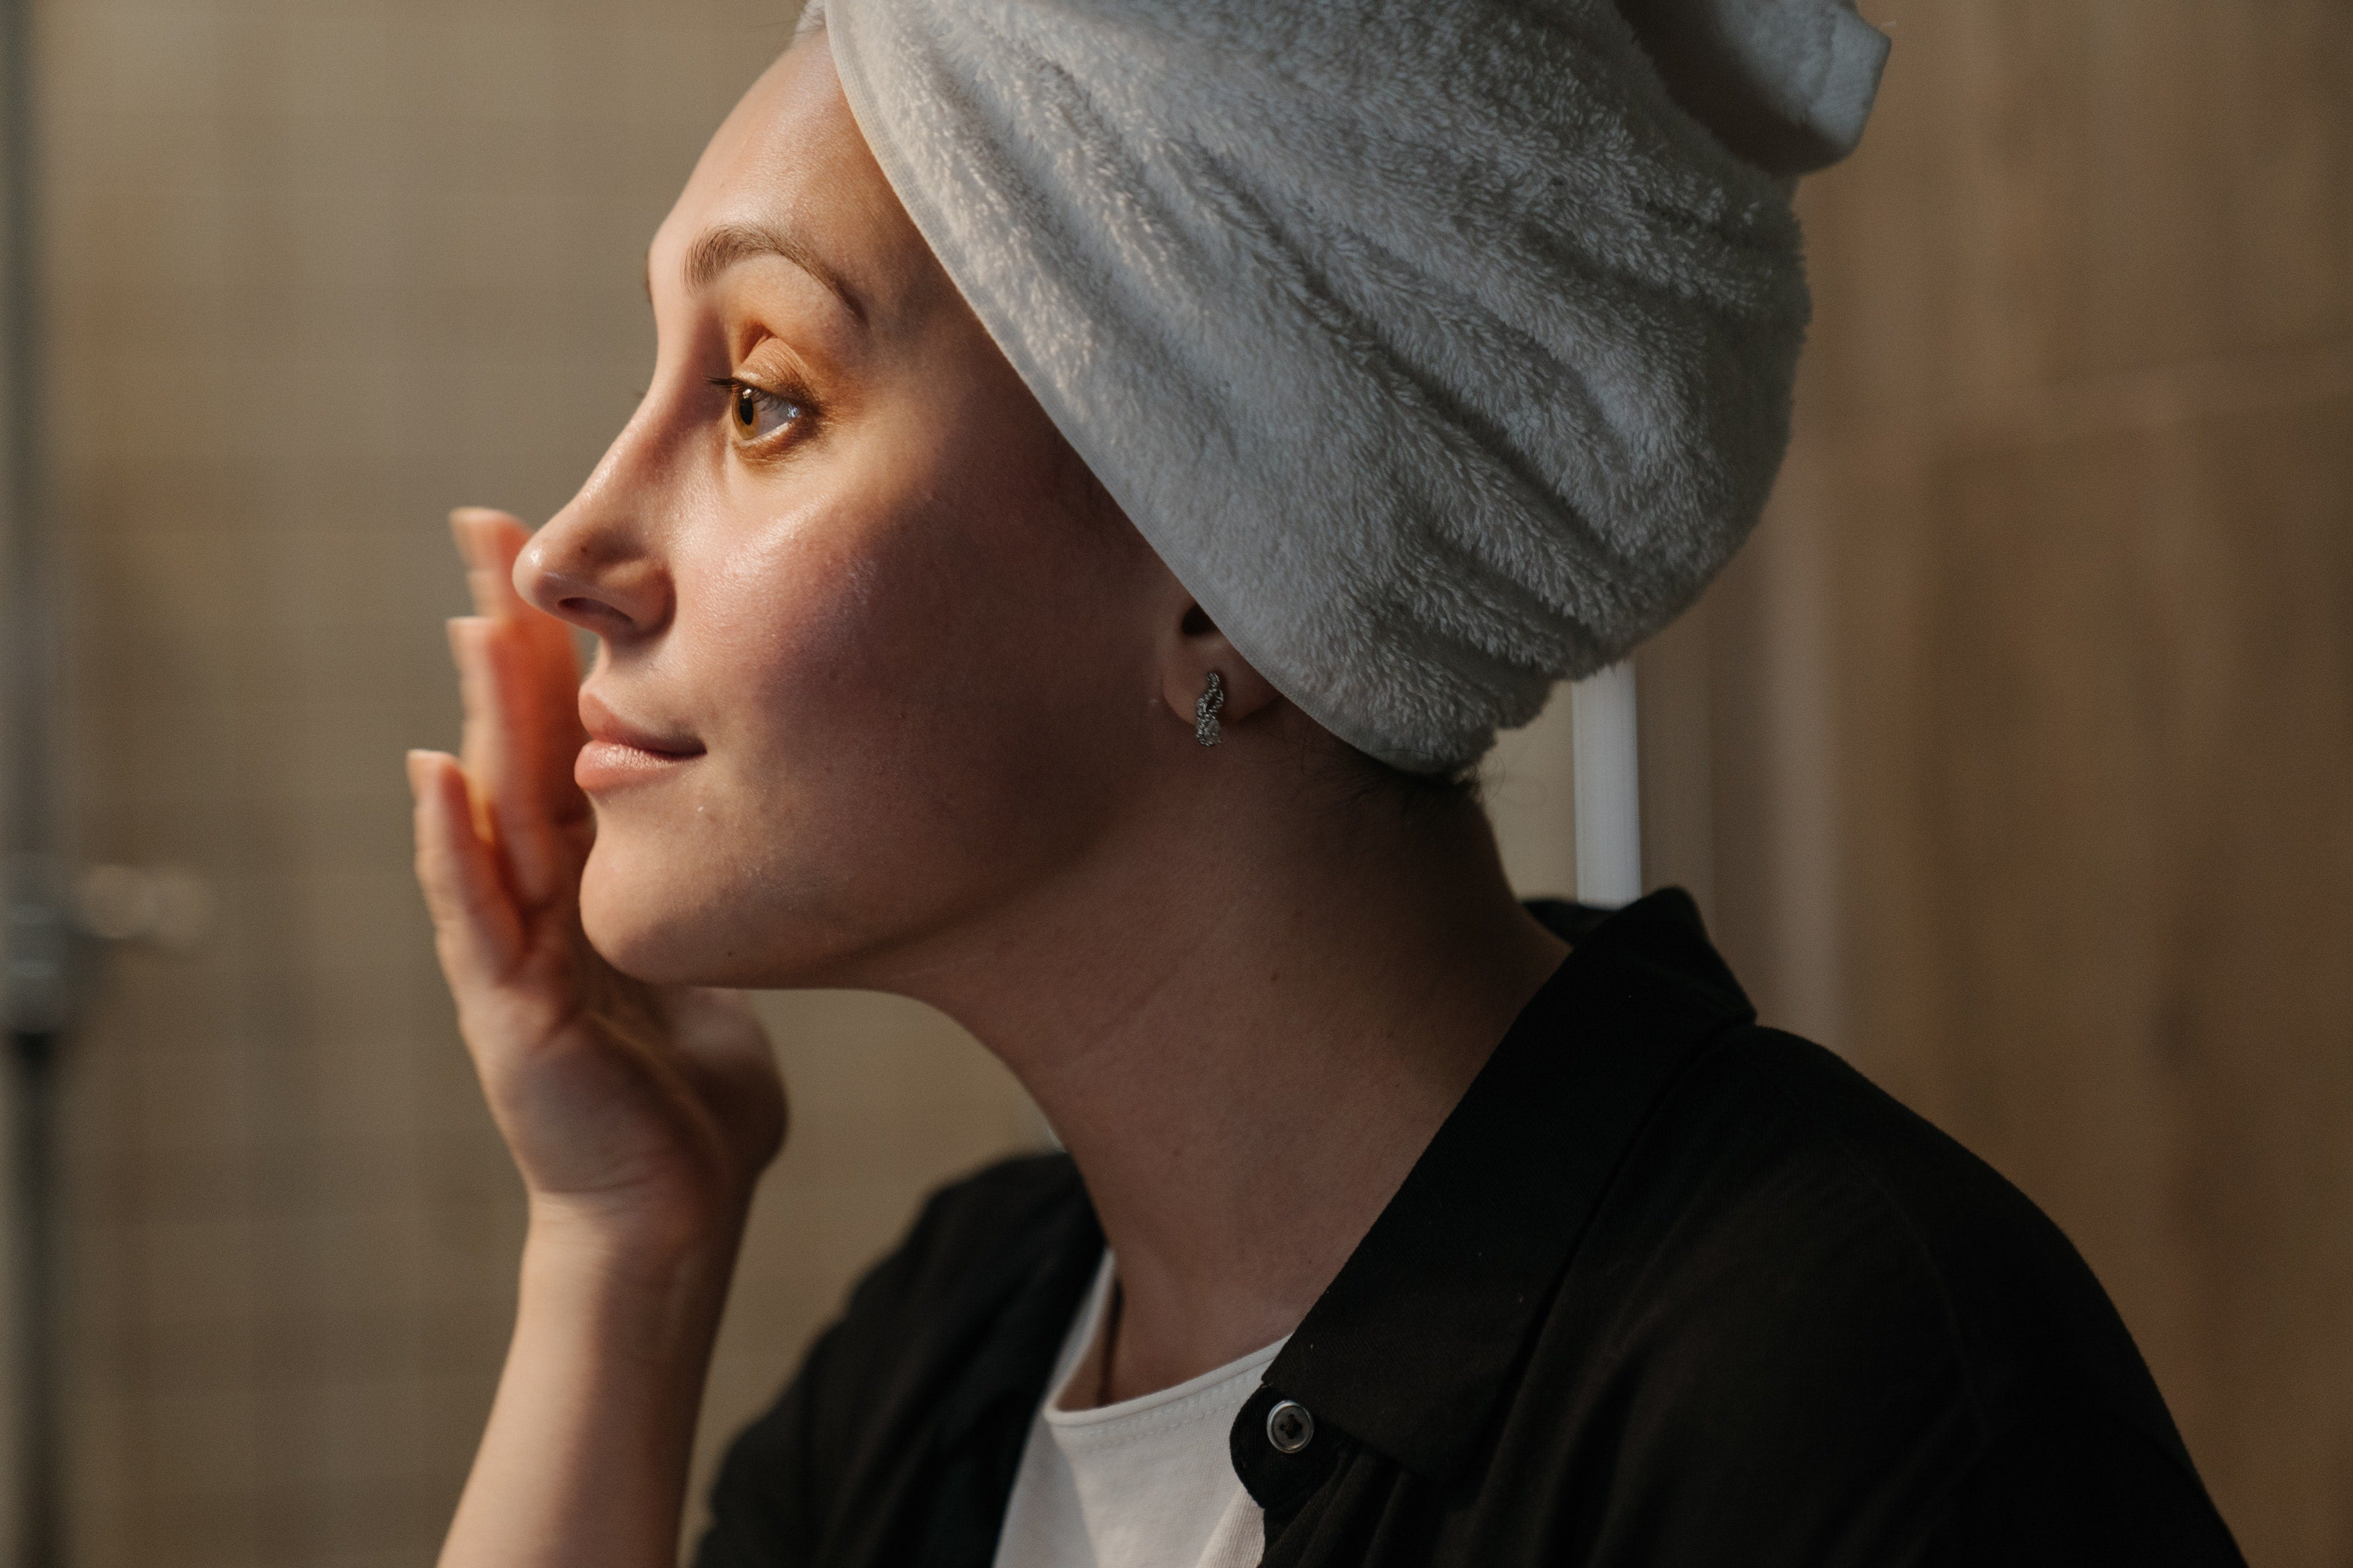 Applying nighttime products to face before sleep